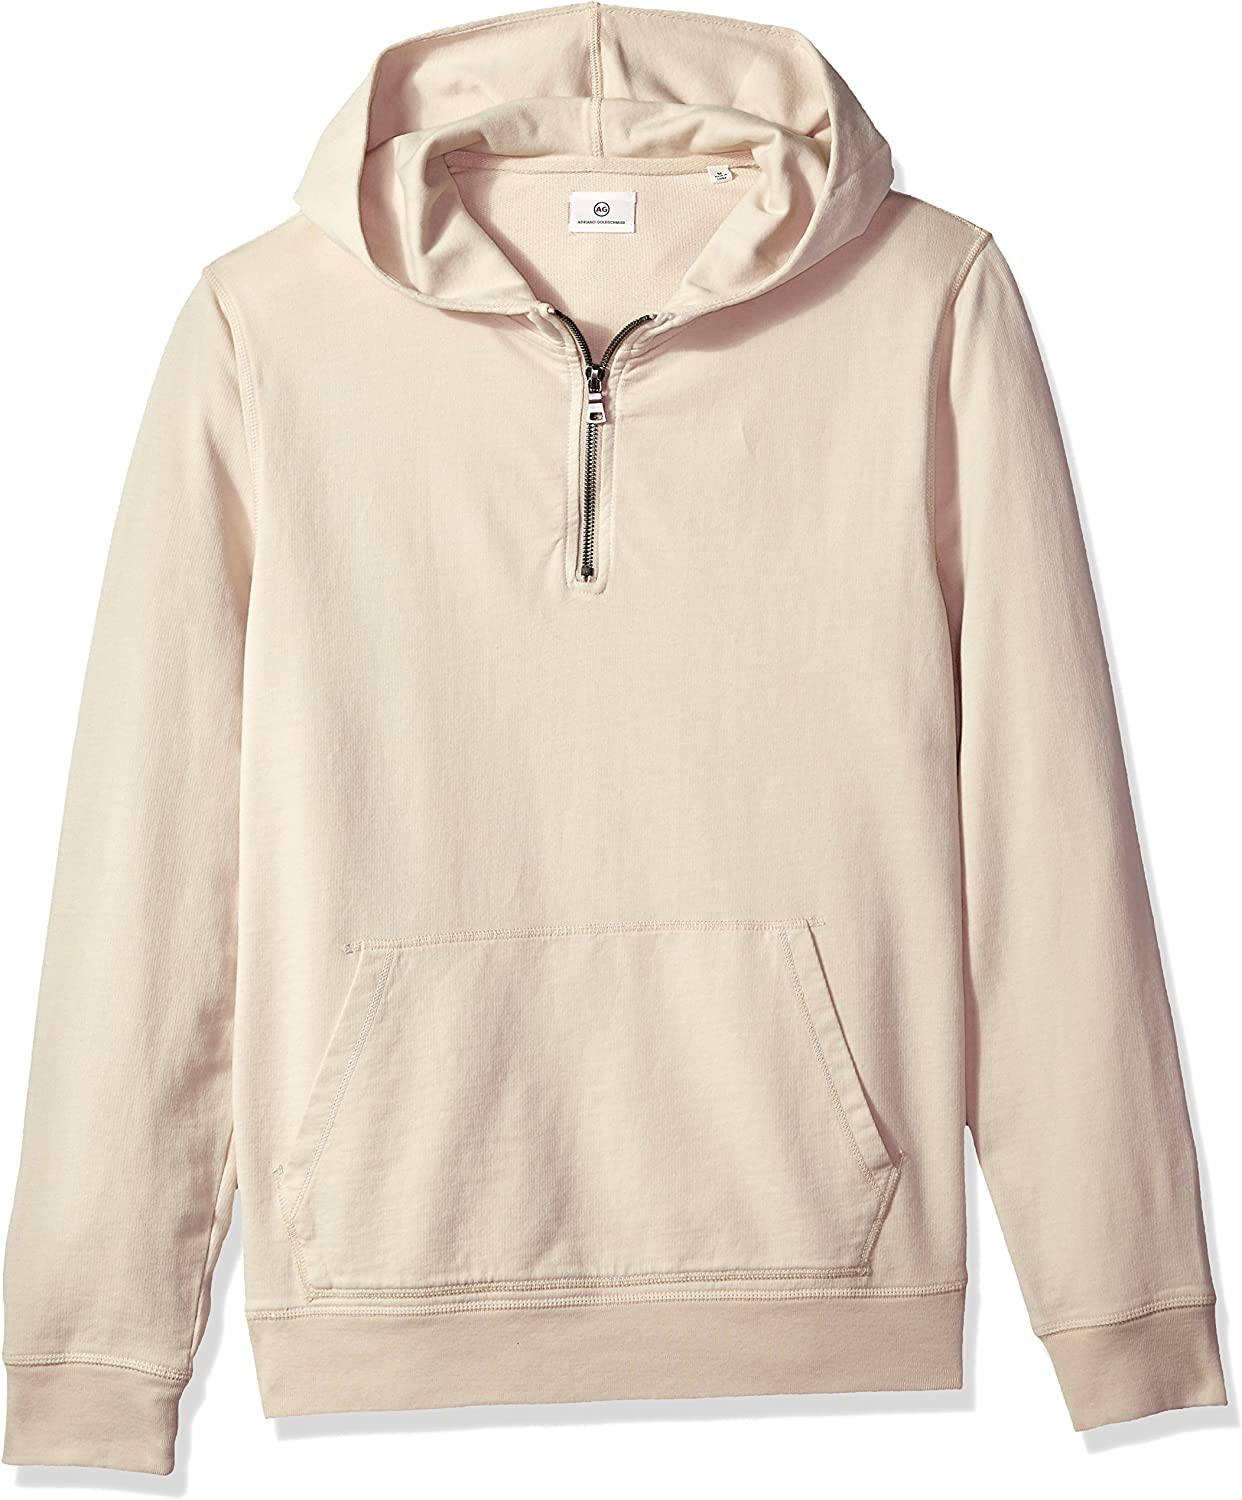 AG Adriano Dealing full price reduction Goldschmied Men's Lyle Hoodie Zip Sales of SALE items from new works Quarter Pullover